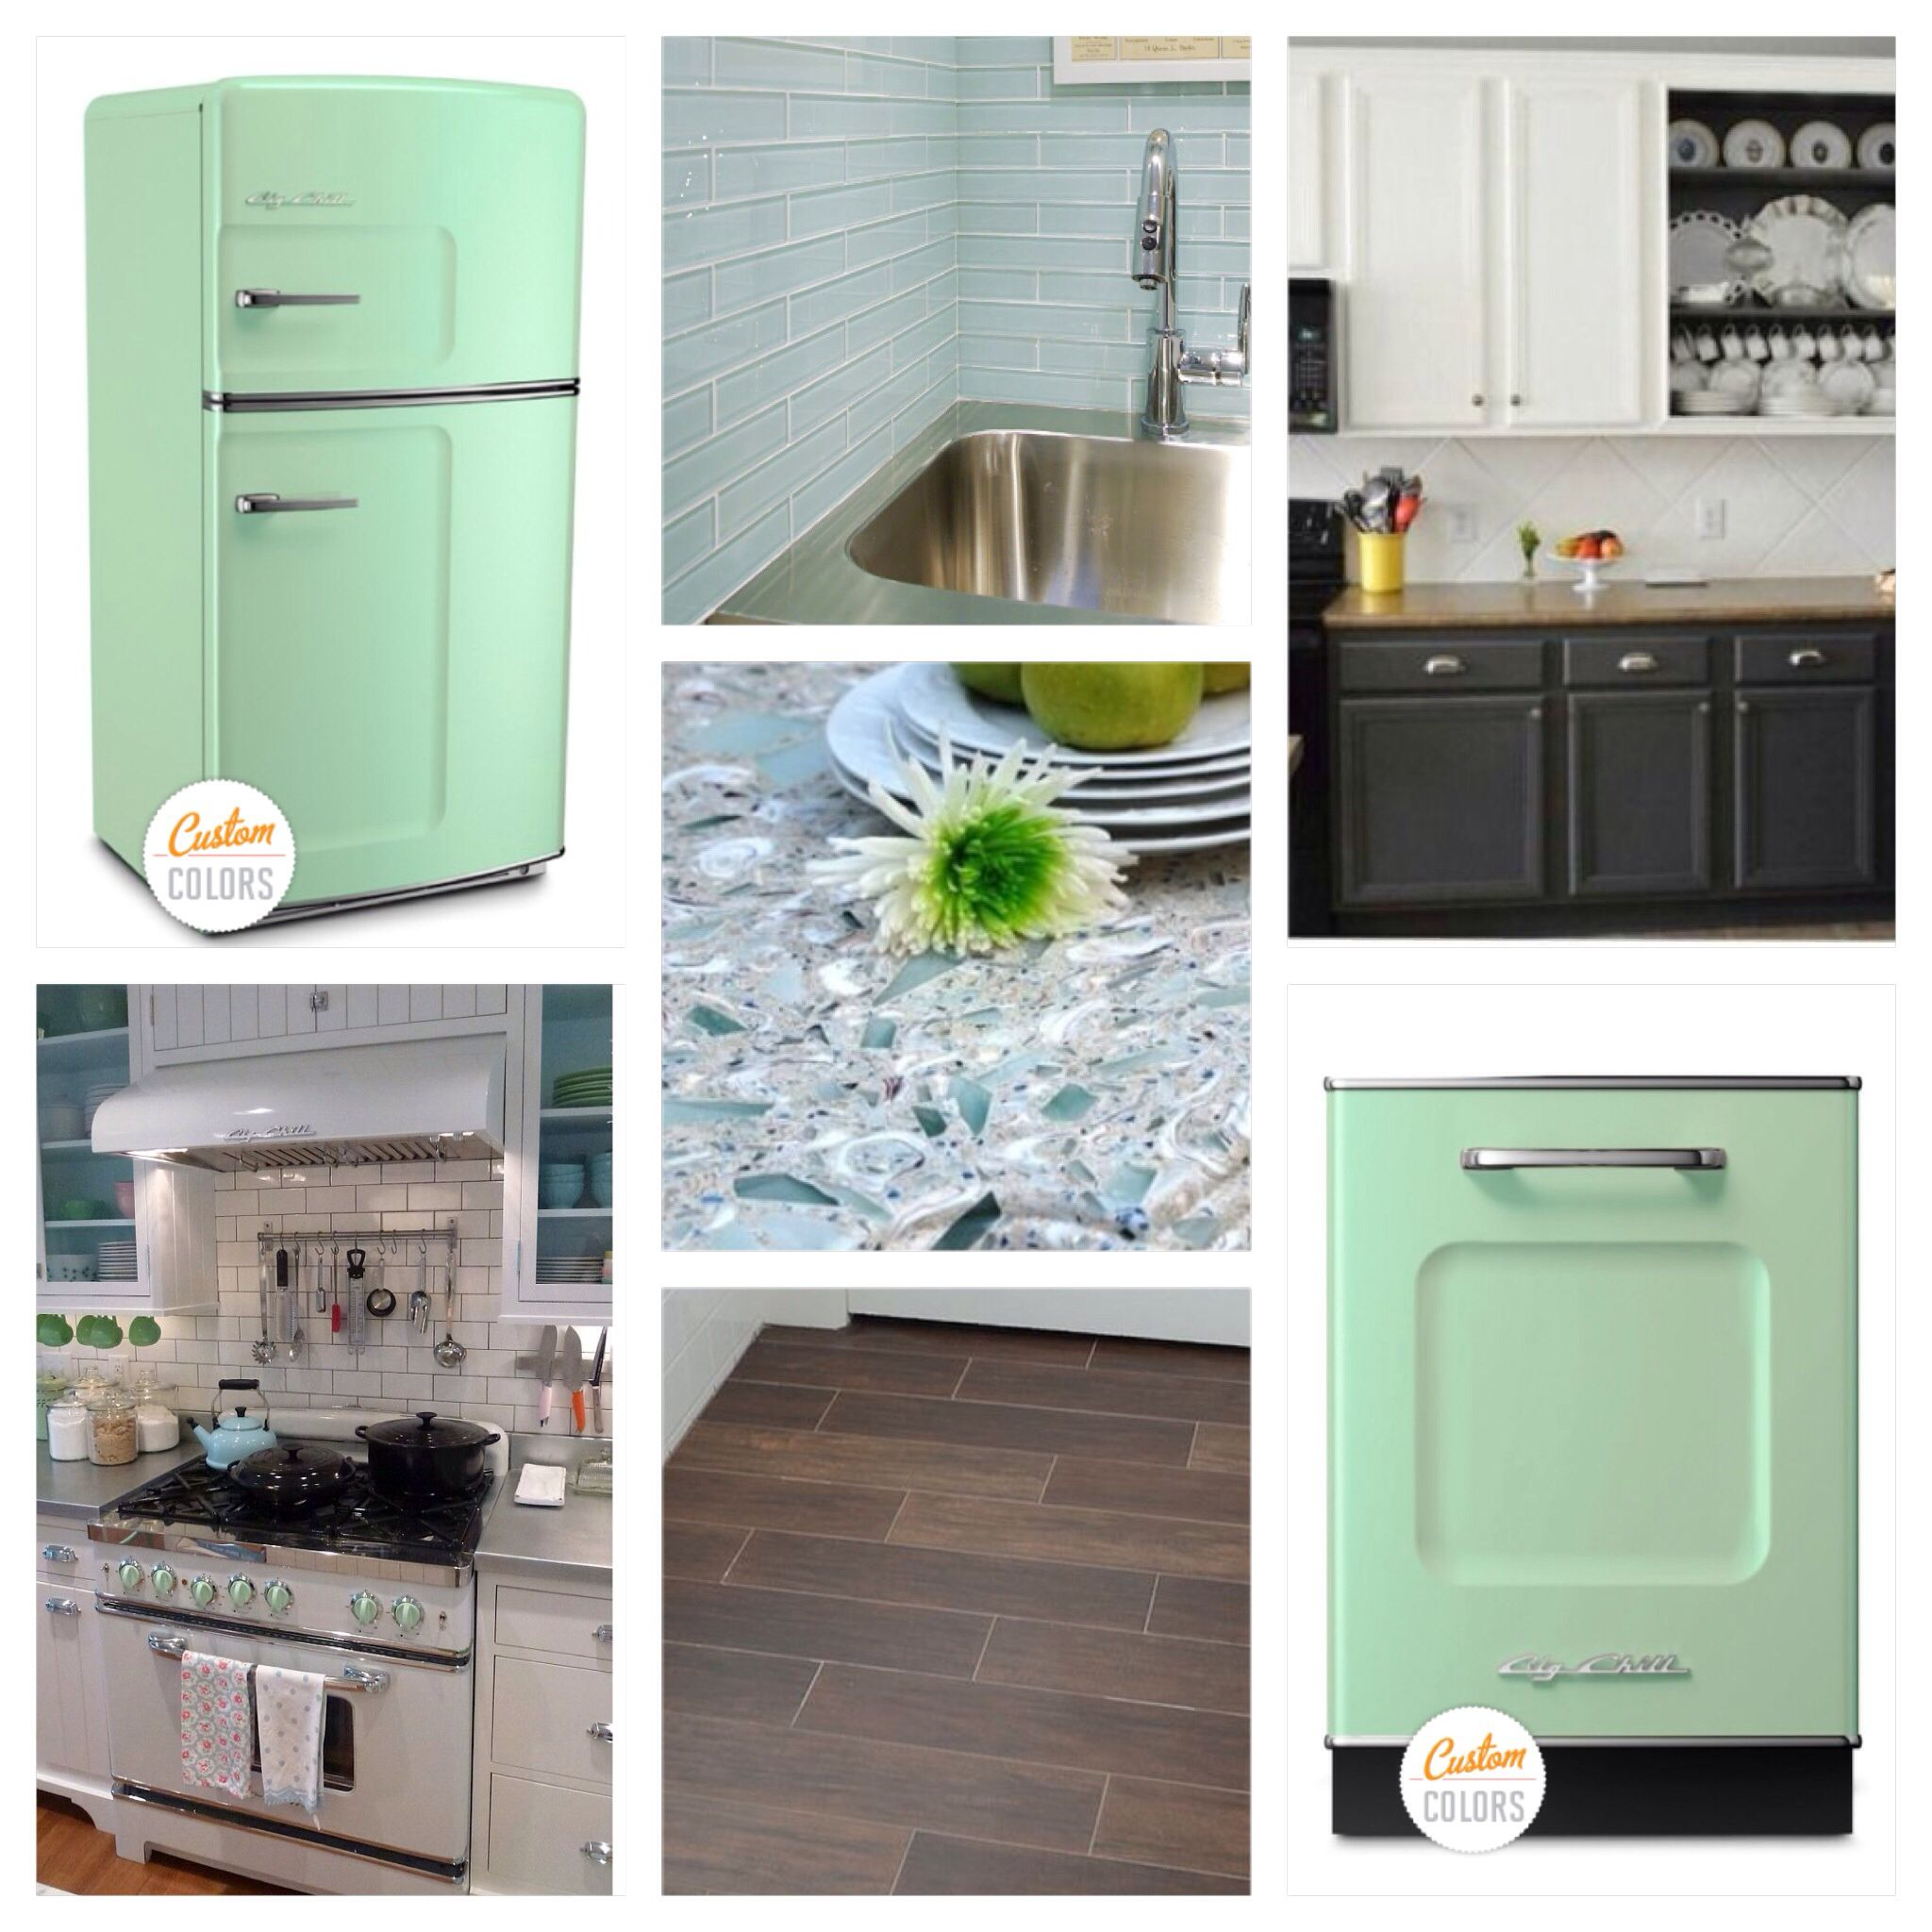 My Dream Kitchen! Big Chill Appliances In White And Mint